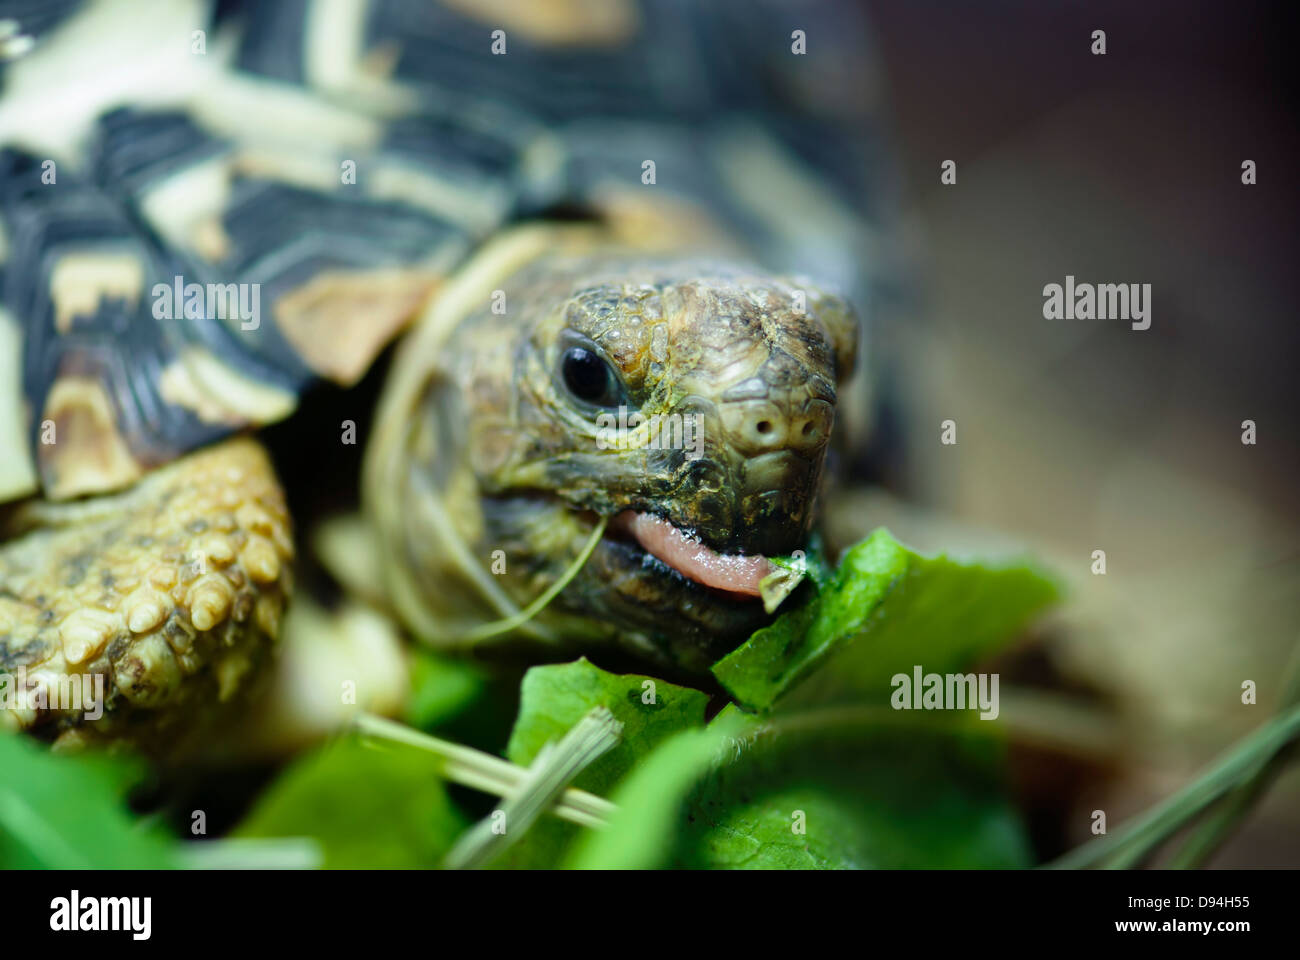 Mountain or leopard tortoise (Geochelone pardalis) eating the green leaf. - Stock Image